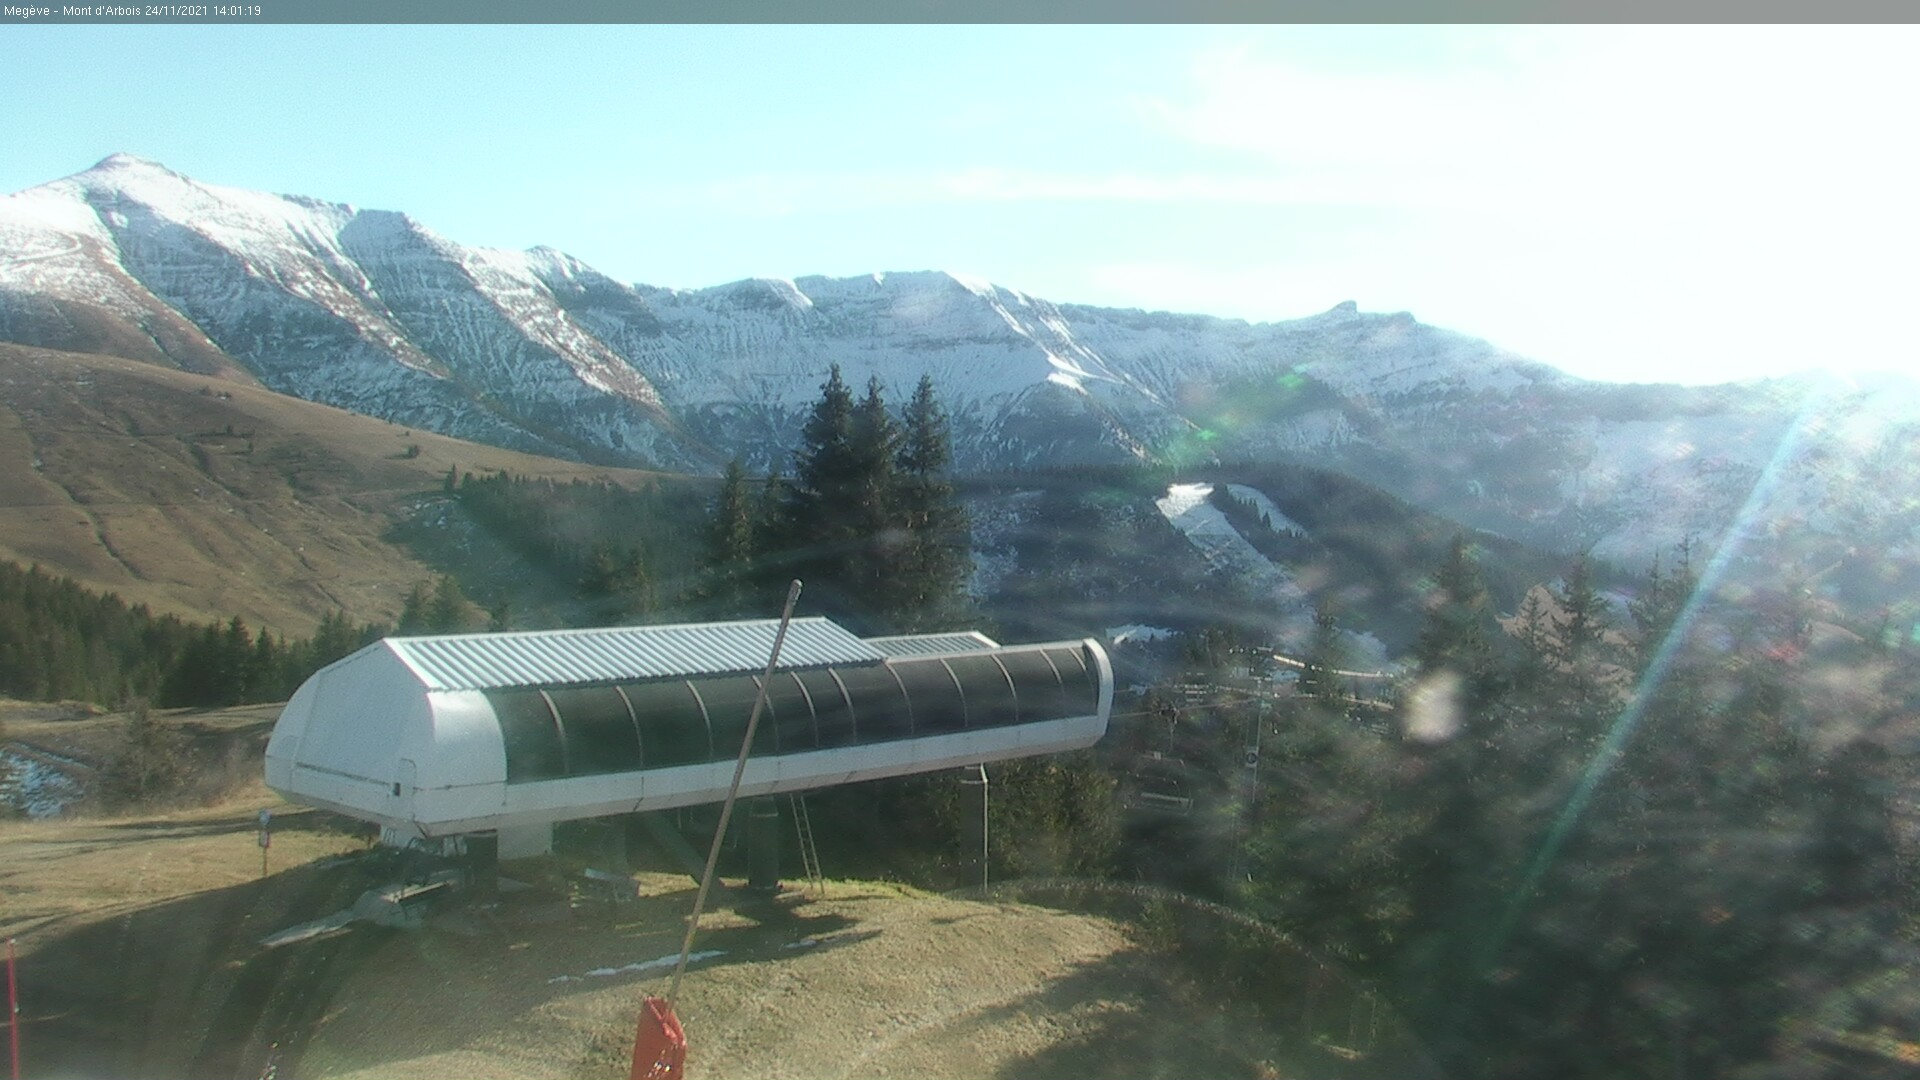 The top station of L'Ideal Chairlift